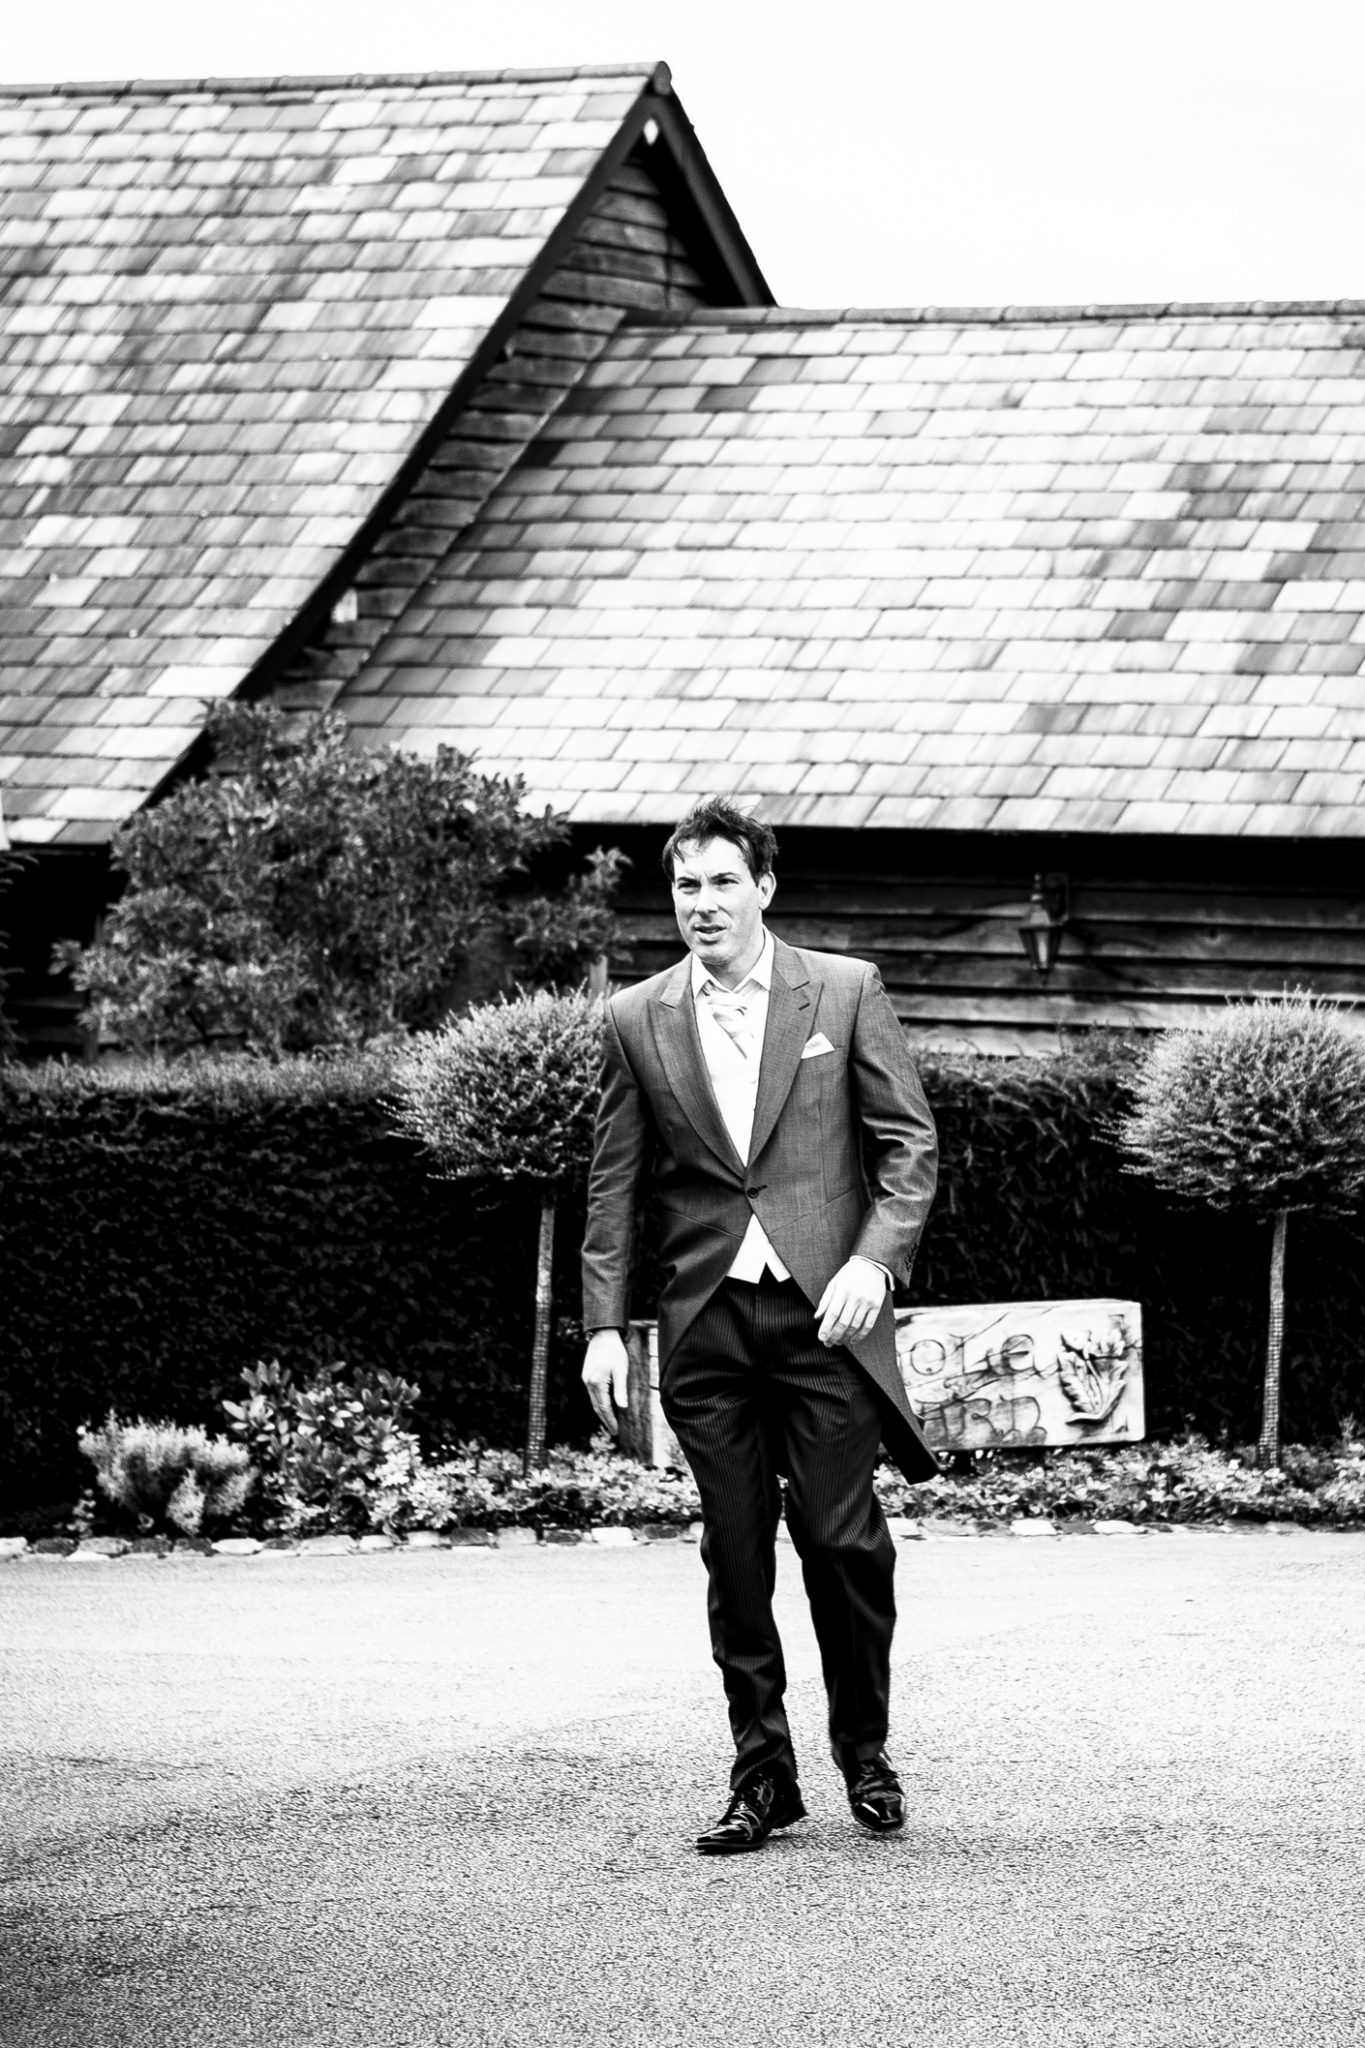 wedding photography-of-the-groom-at-The-wedding-venue-Sandhole-Oak-Barn-Congleton-Cheshire